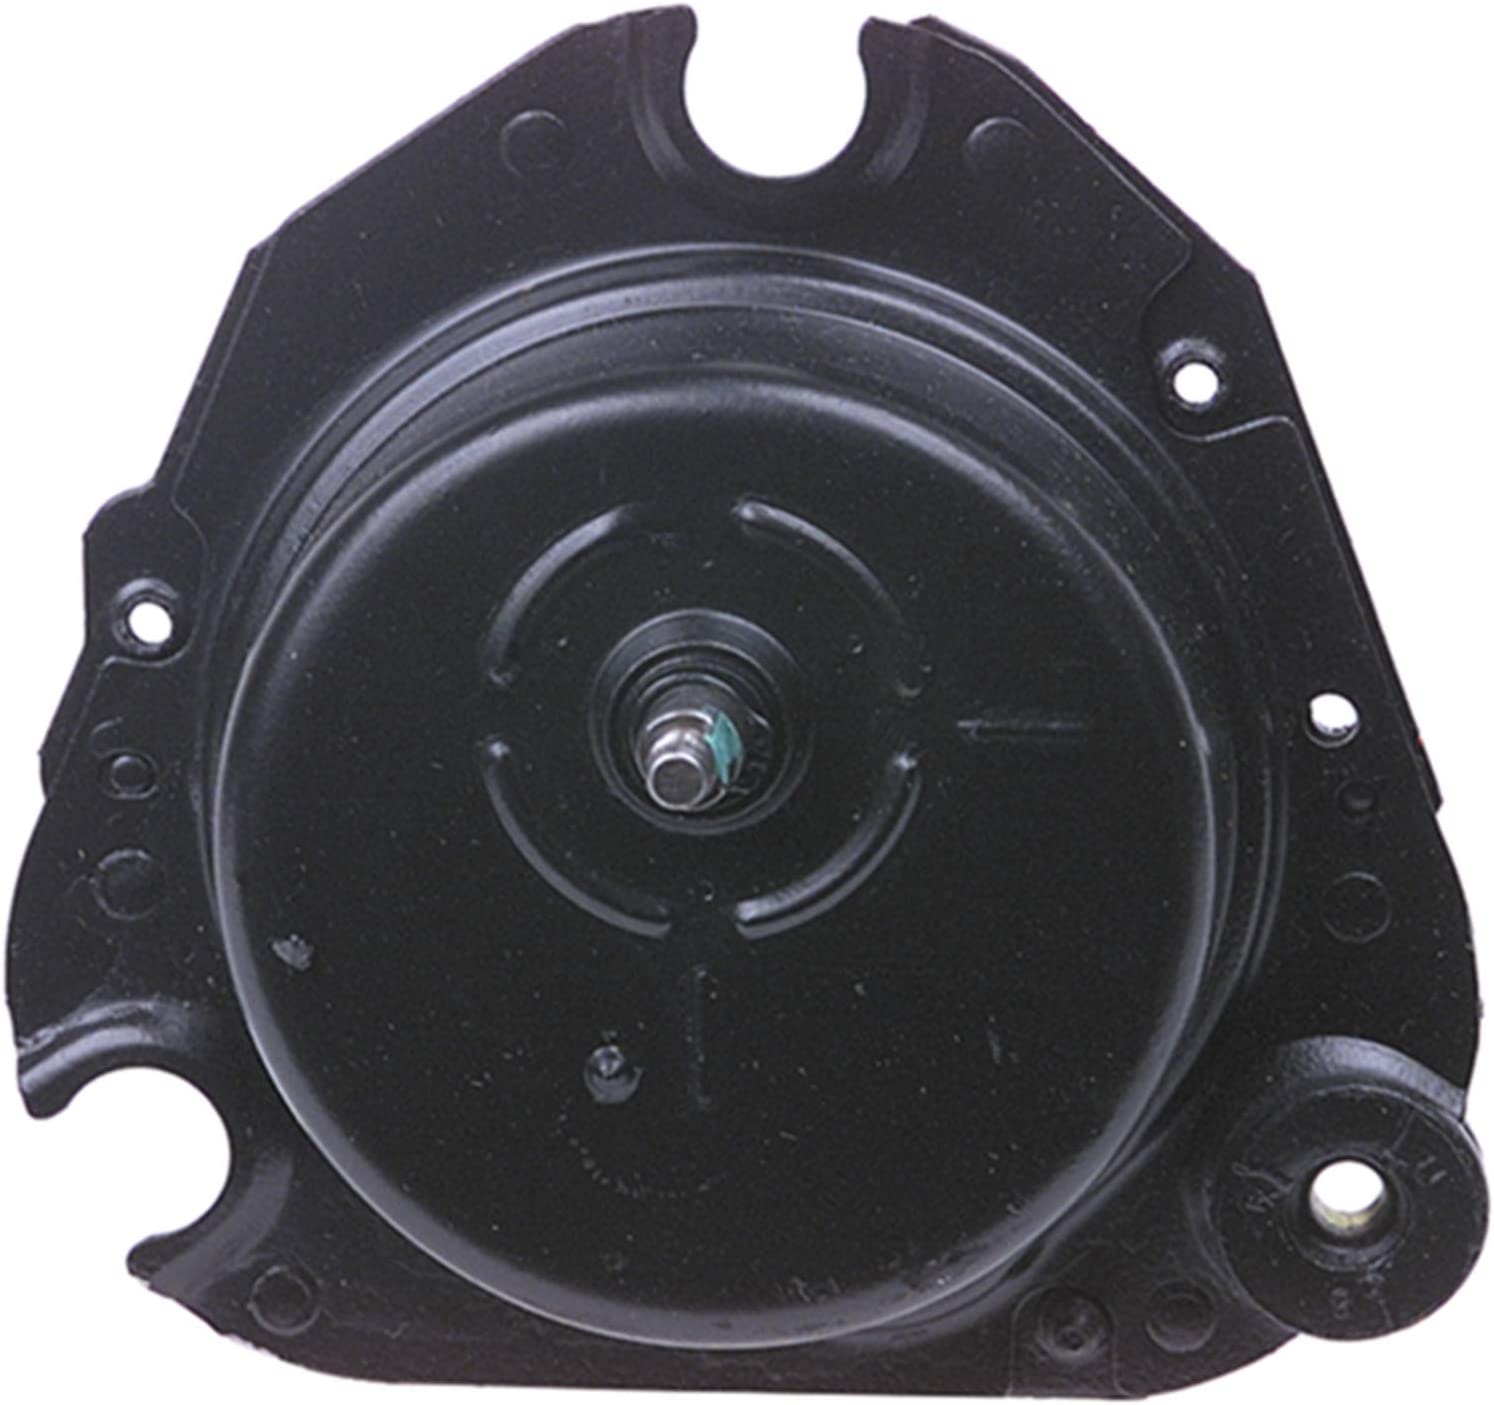 A1 Cardone Max 60% OFF 40-120 Wiper Motor Remanufactured sold out